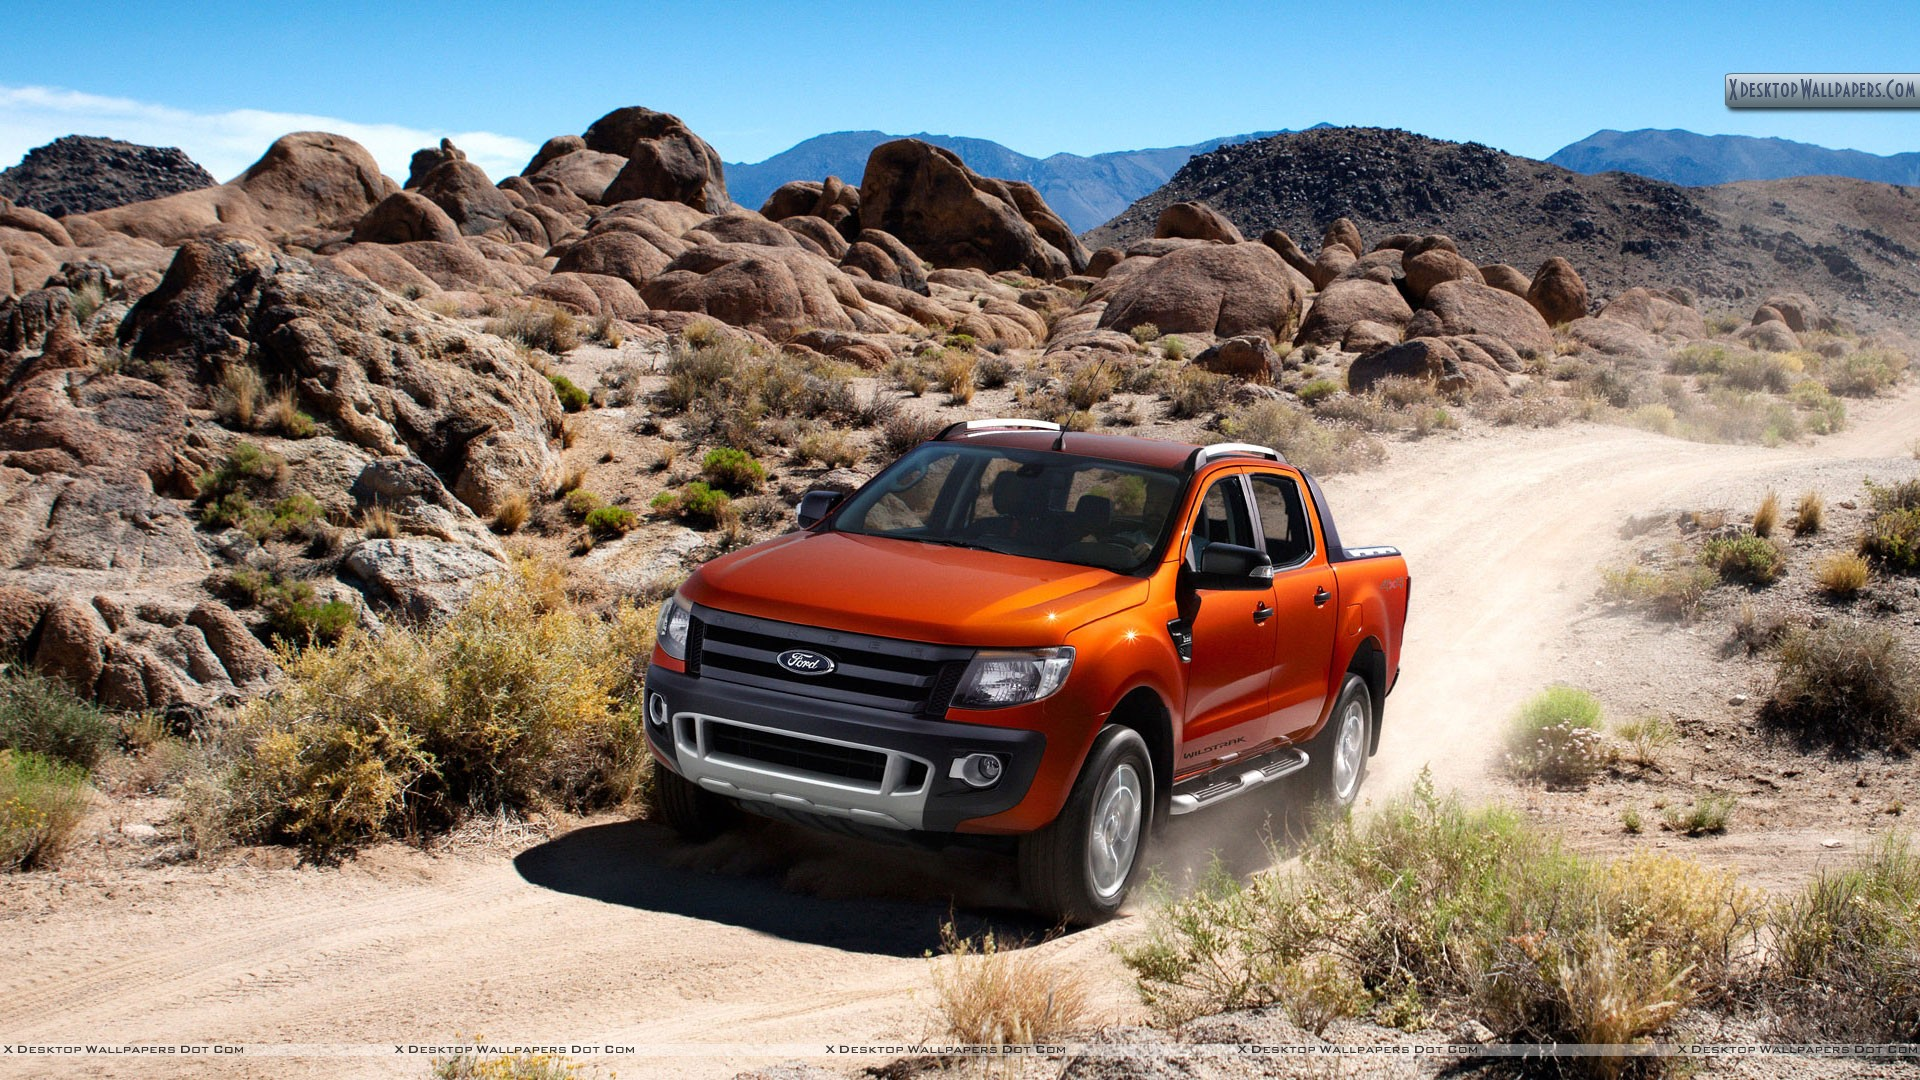 Ford Ranger Wallpapers Photos Images In Hd